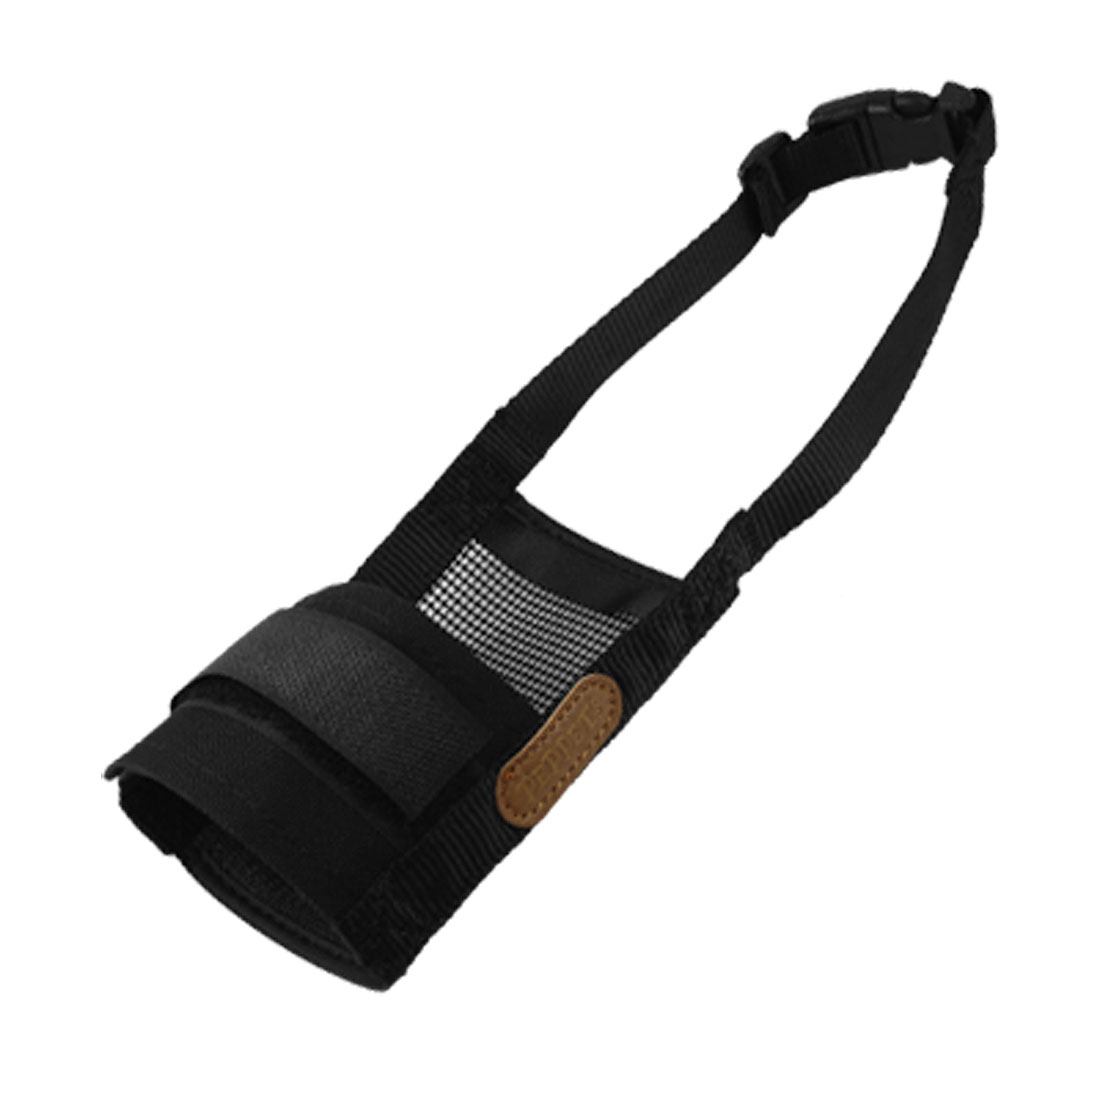 Adjustable Strap Fastener Black Anti Bark Muzzle for Dog Fdpxb